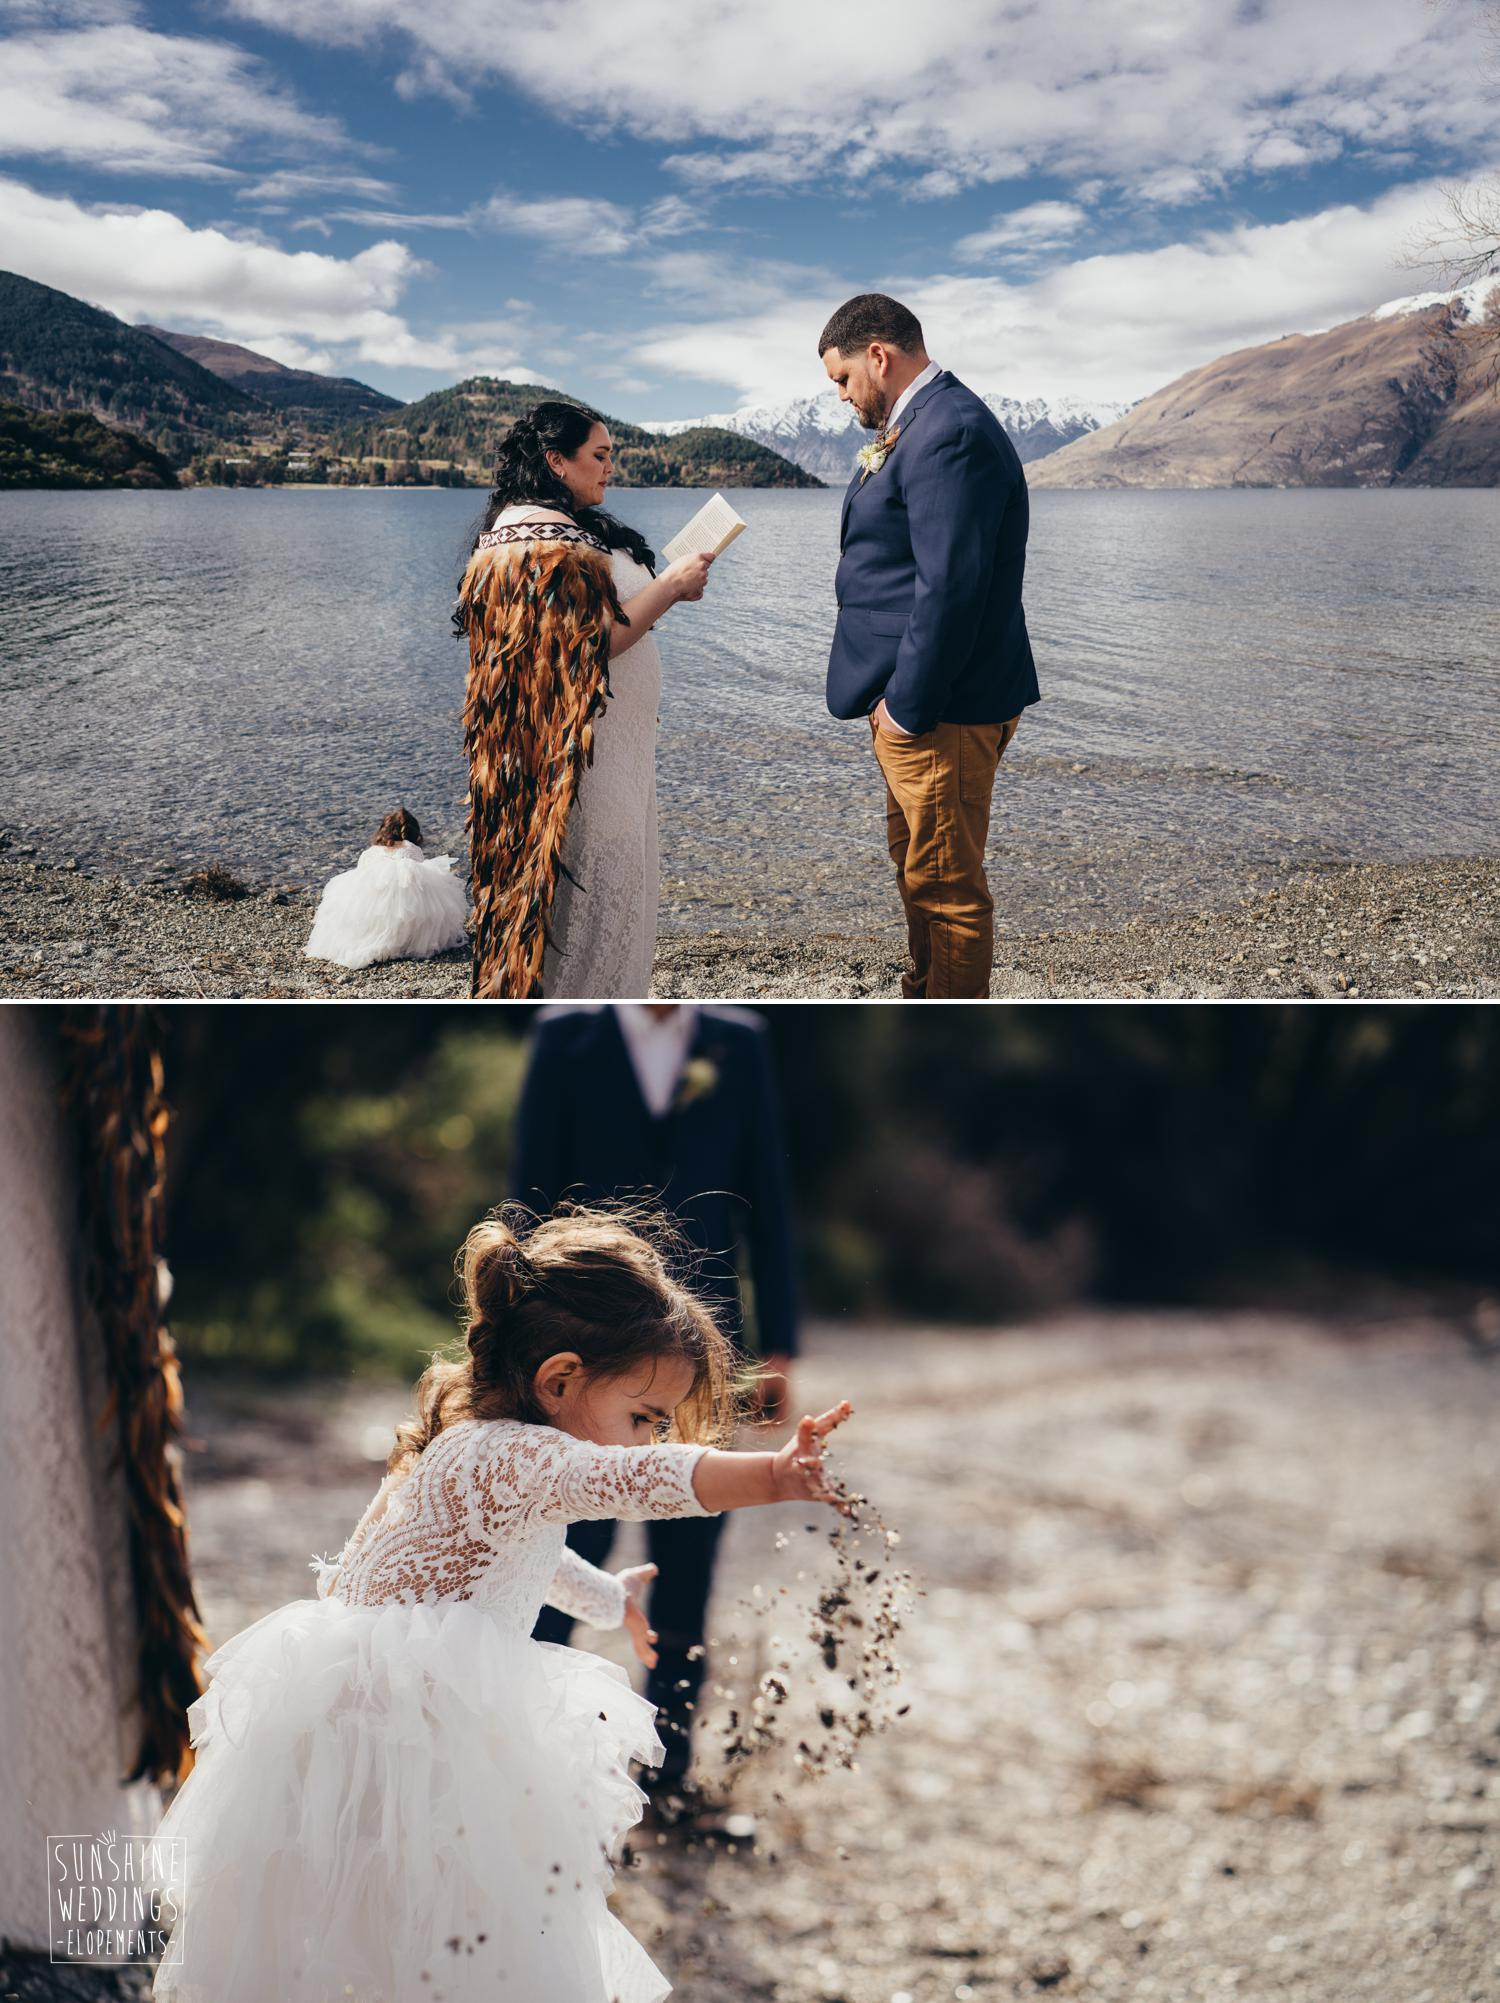 Wedding ceremony lake Wakatipu